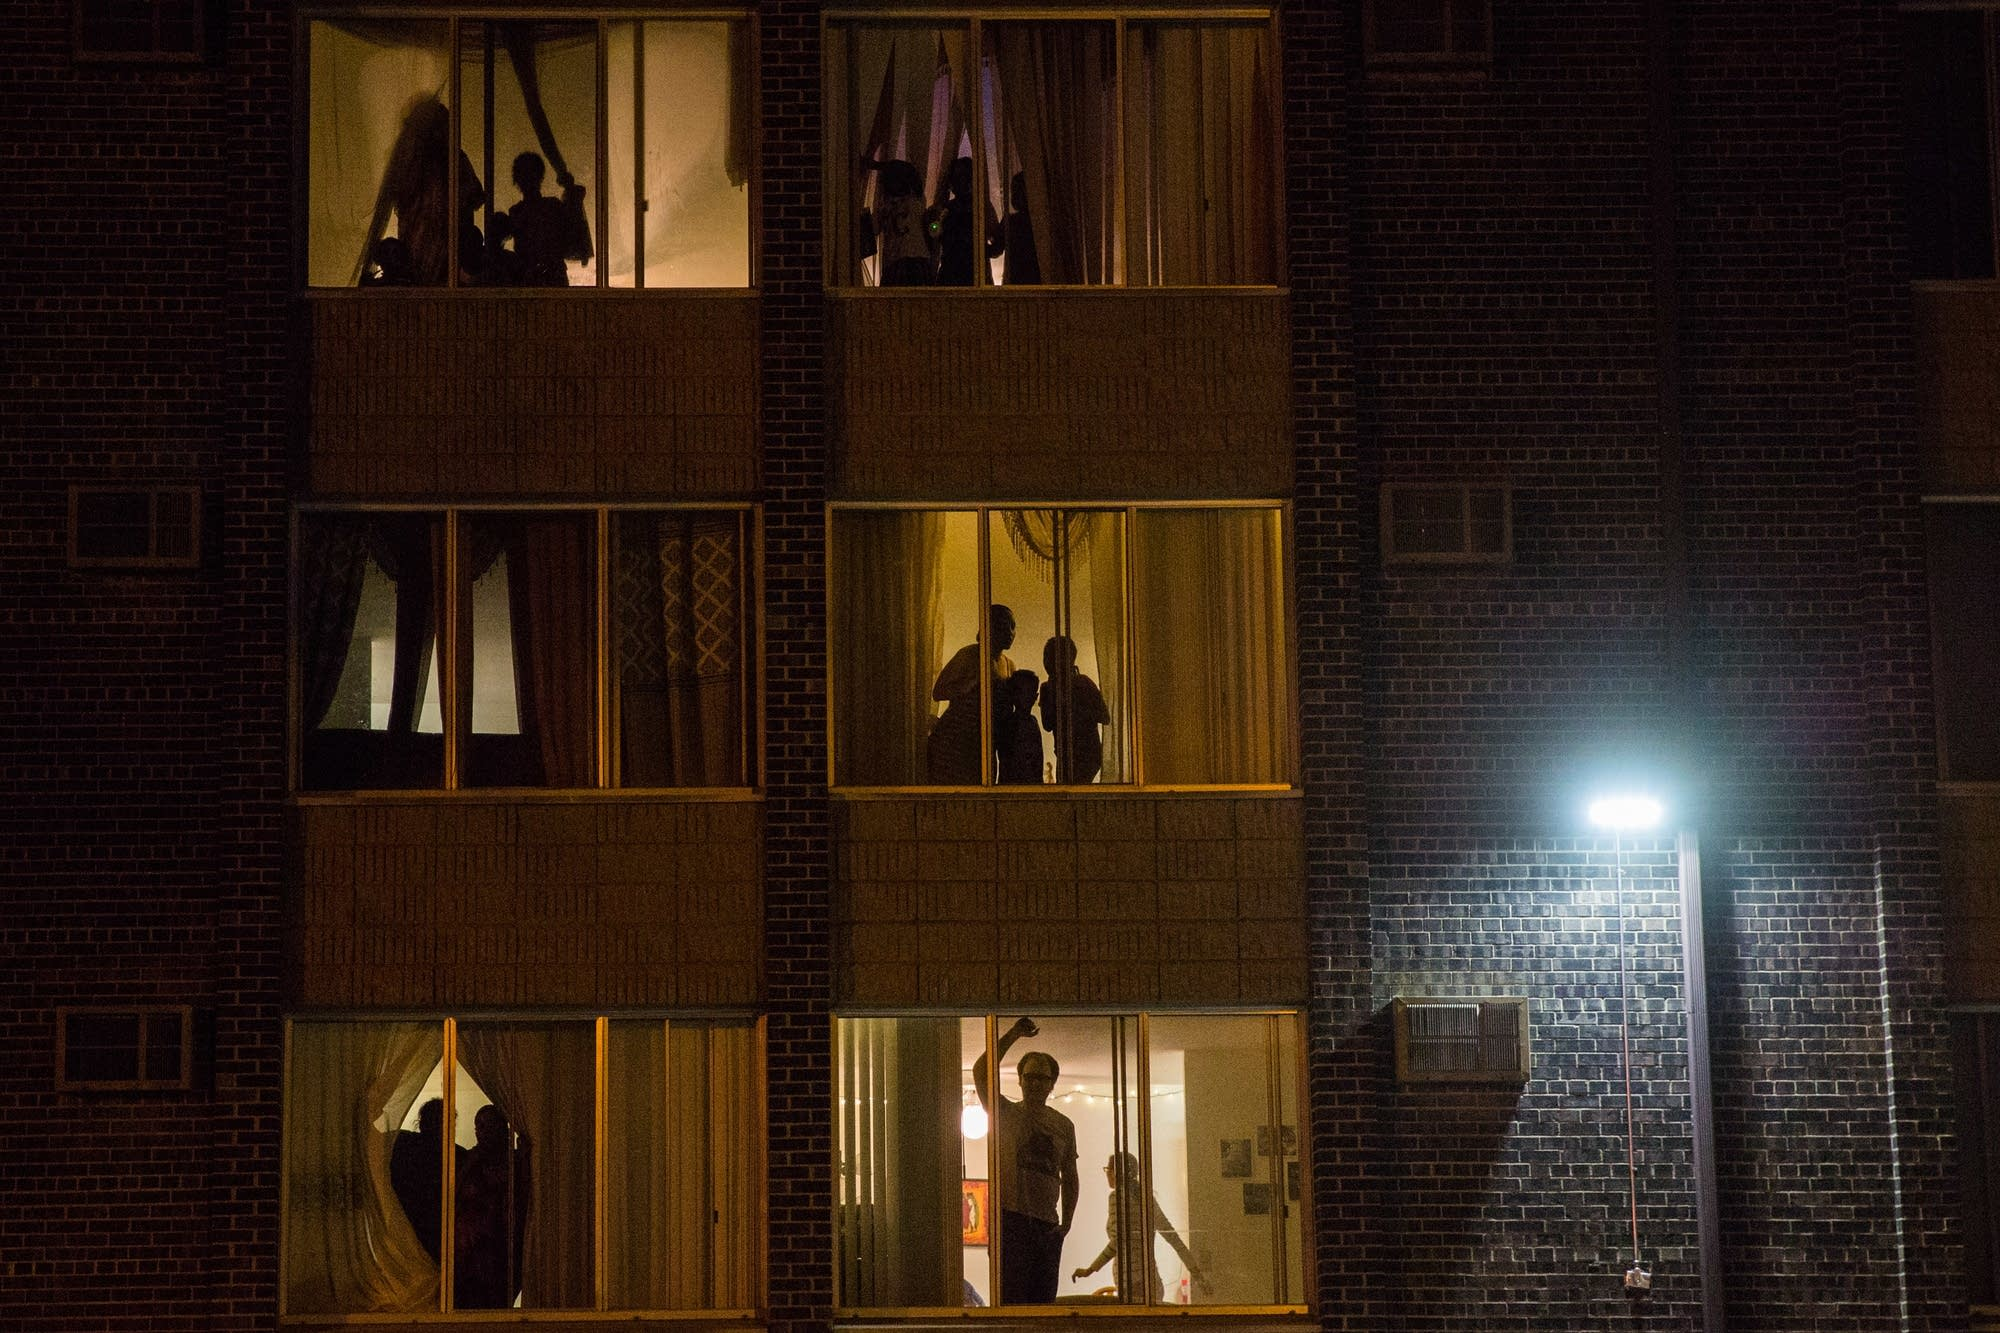 Residents watch from their apartments.